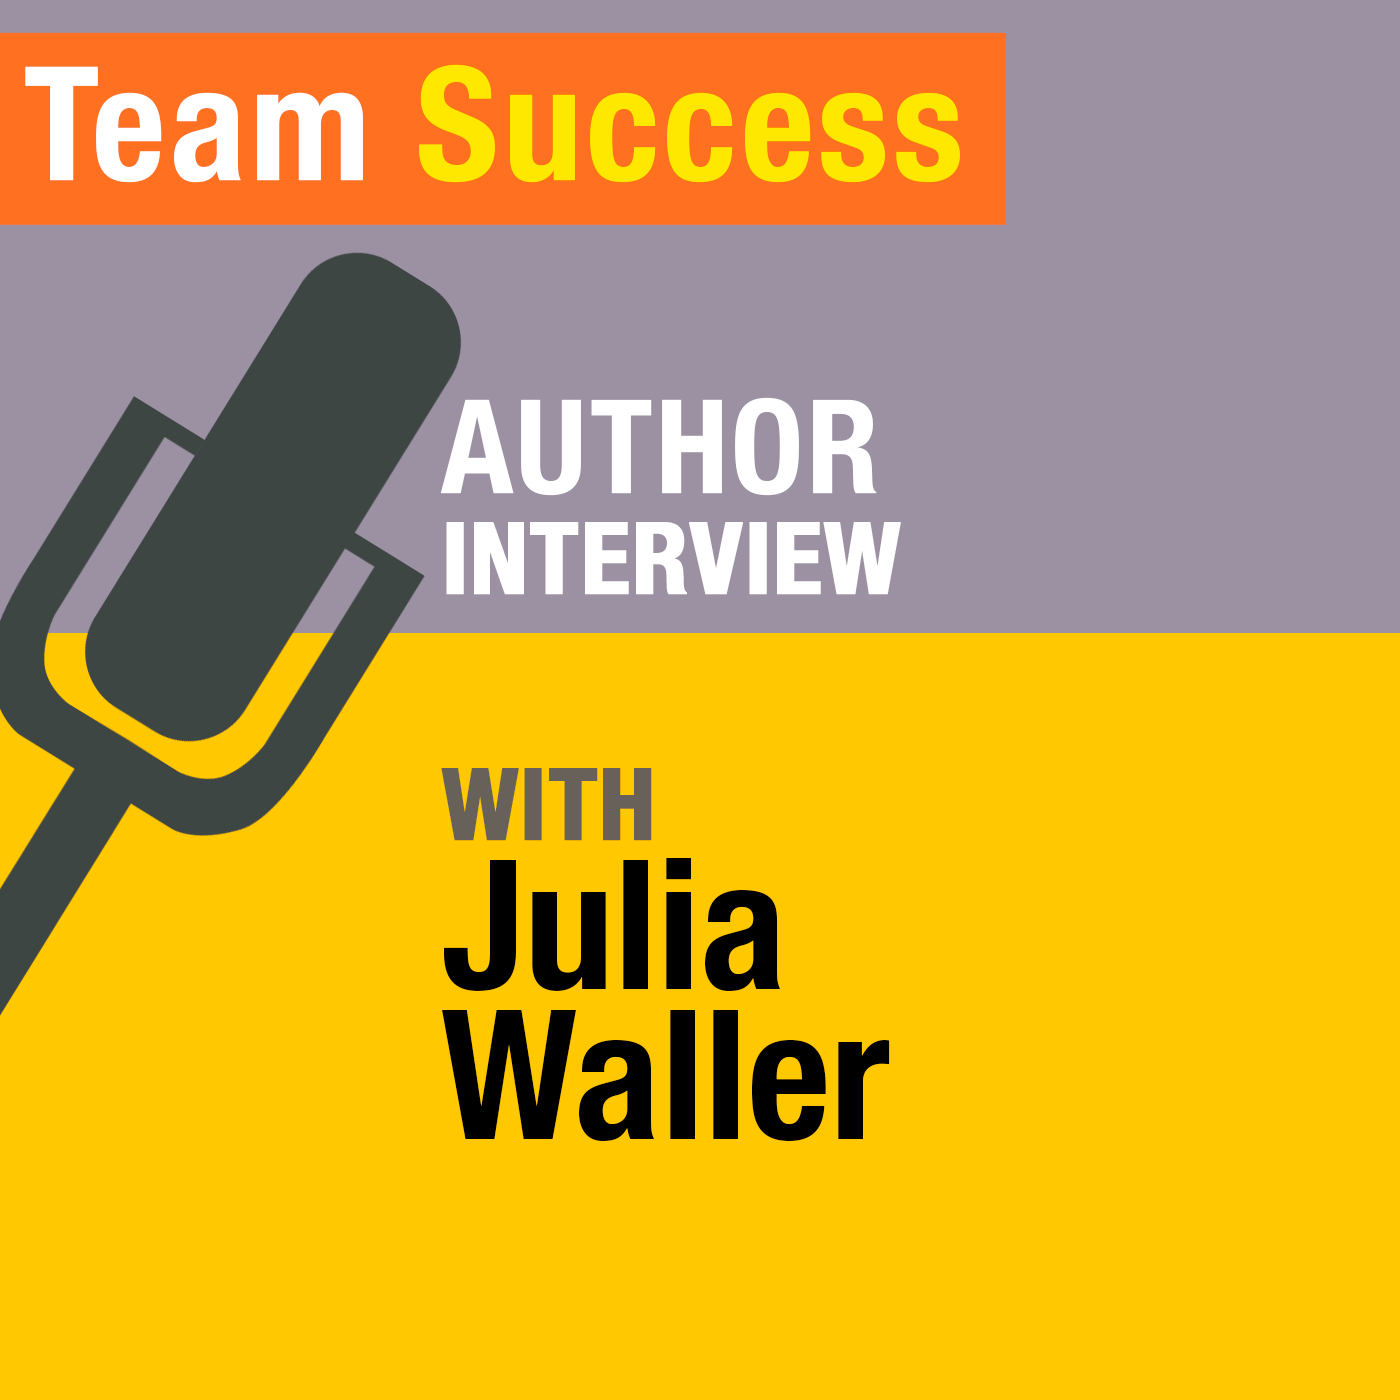 Author Interview with Julia Waller